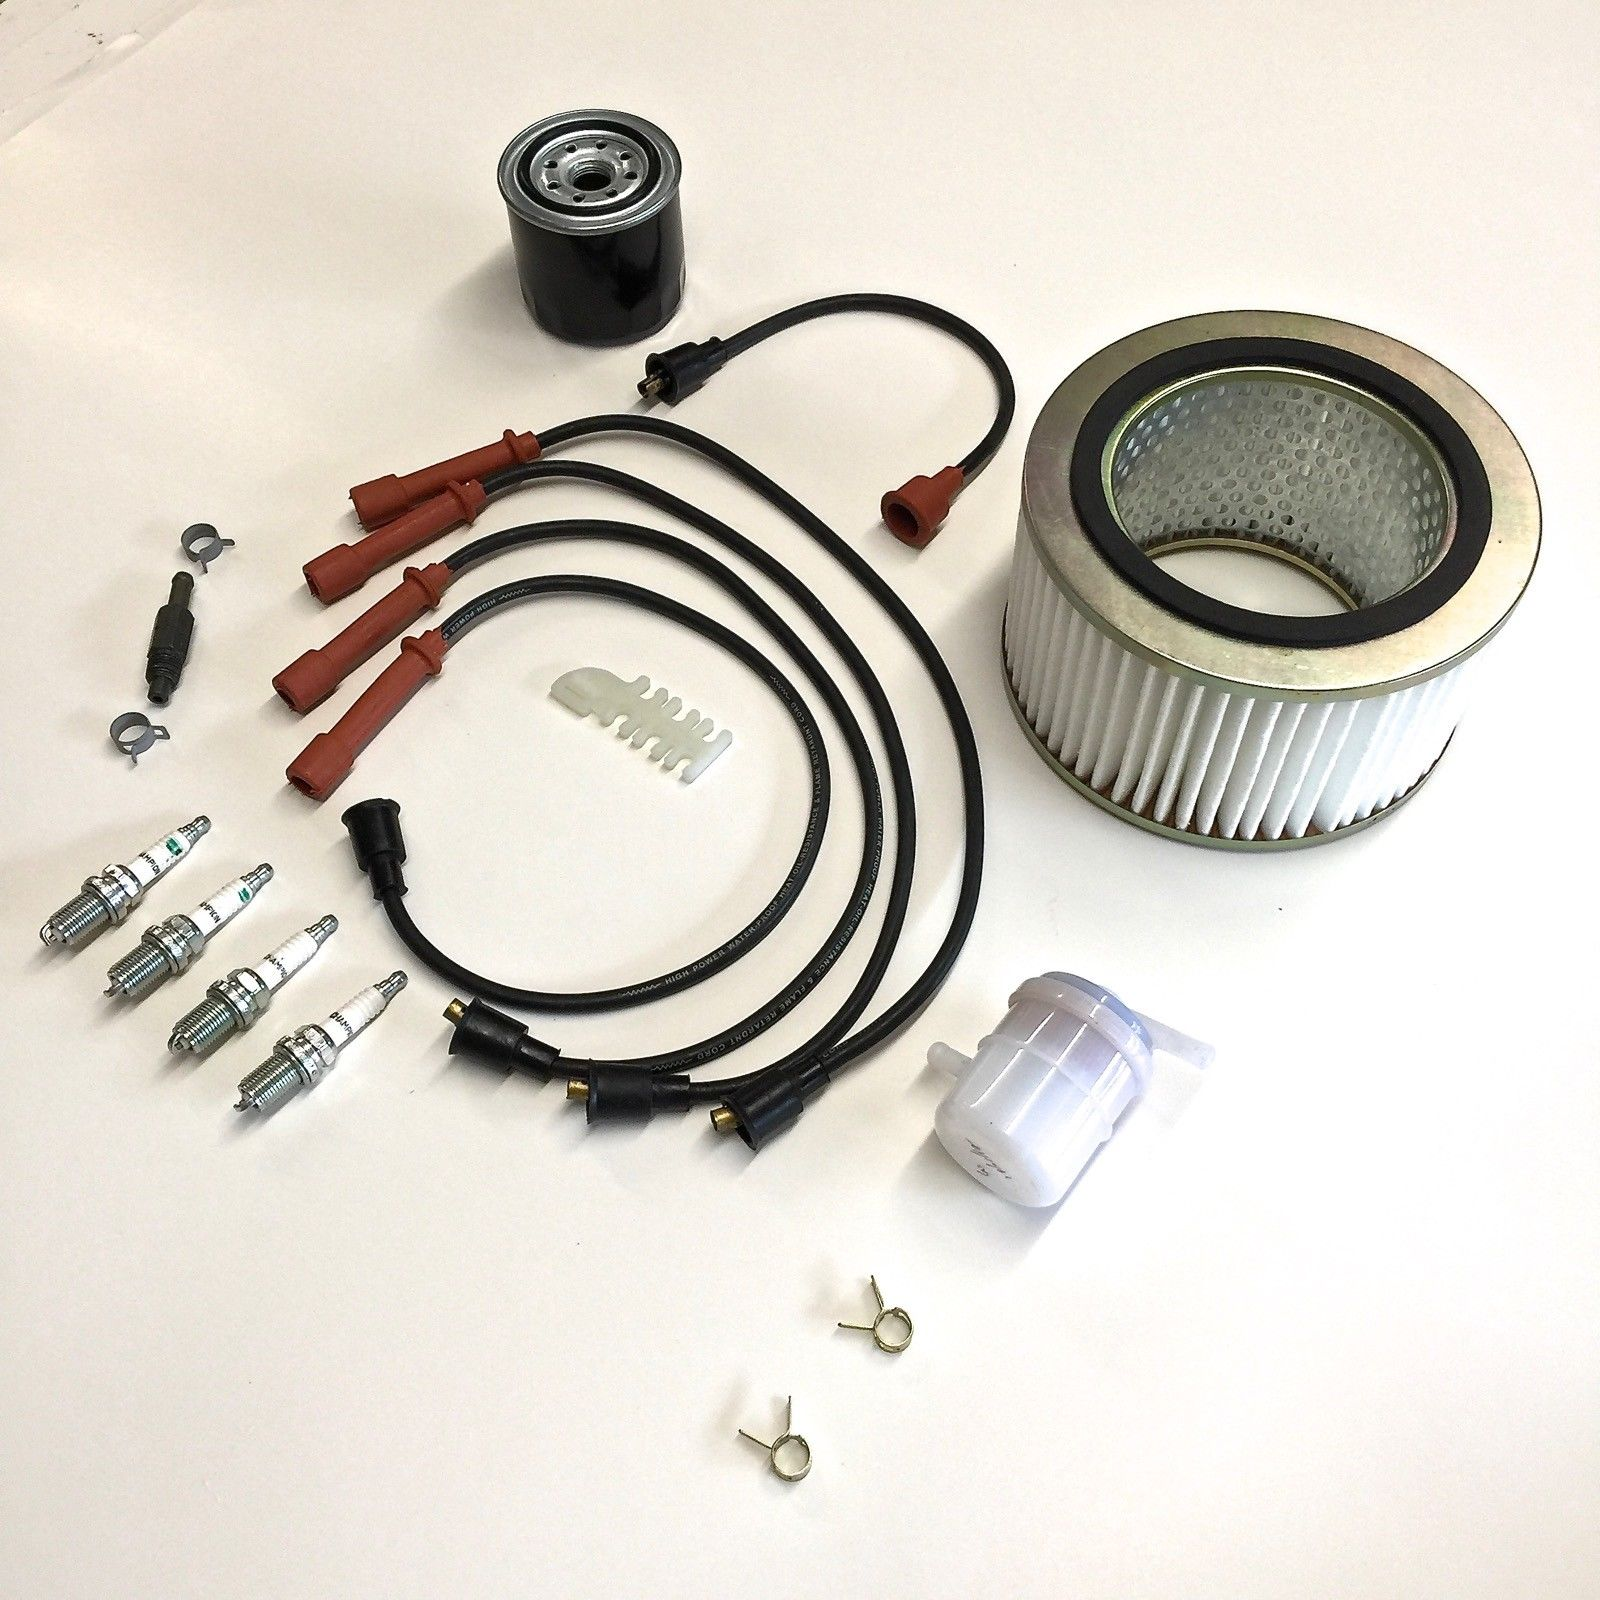 hight resolution of tune up oil air fuel filters spark plug